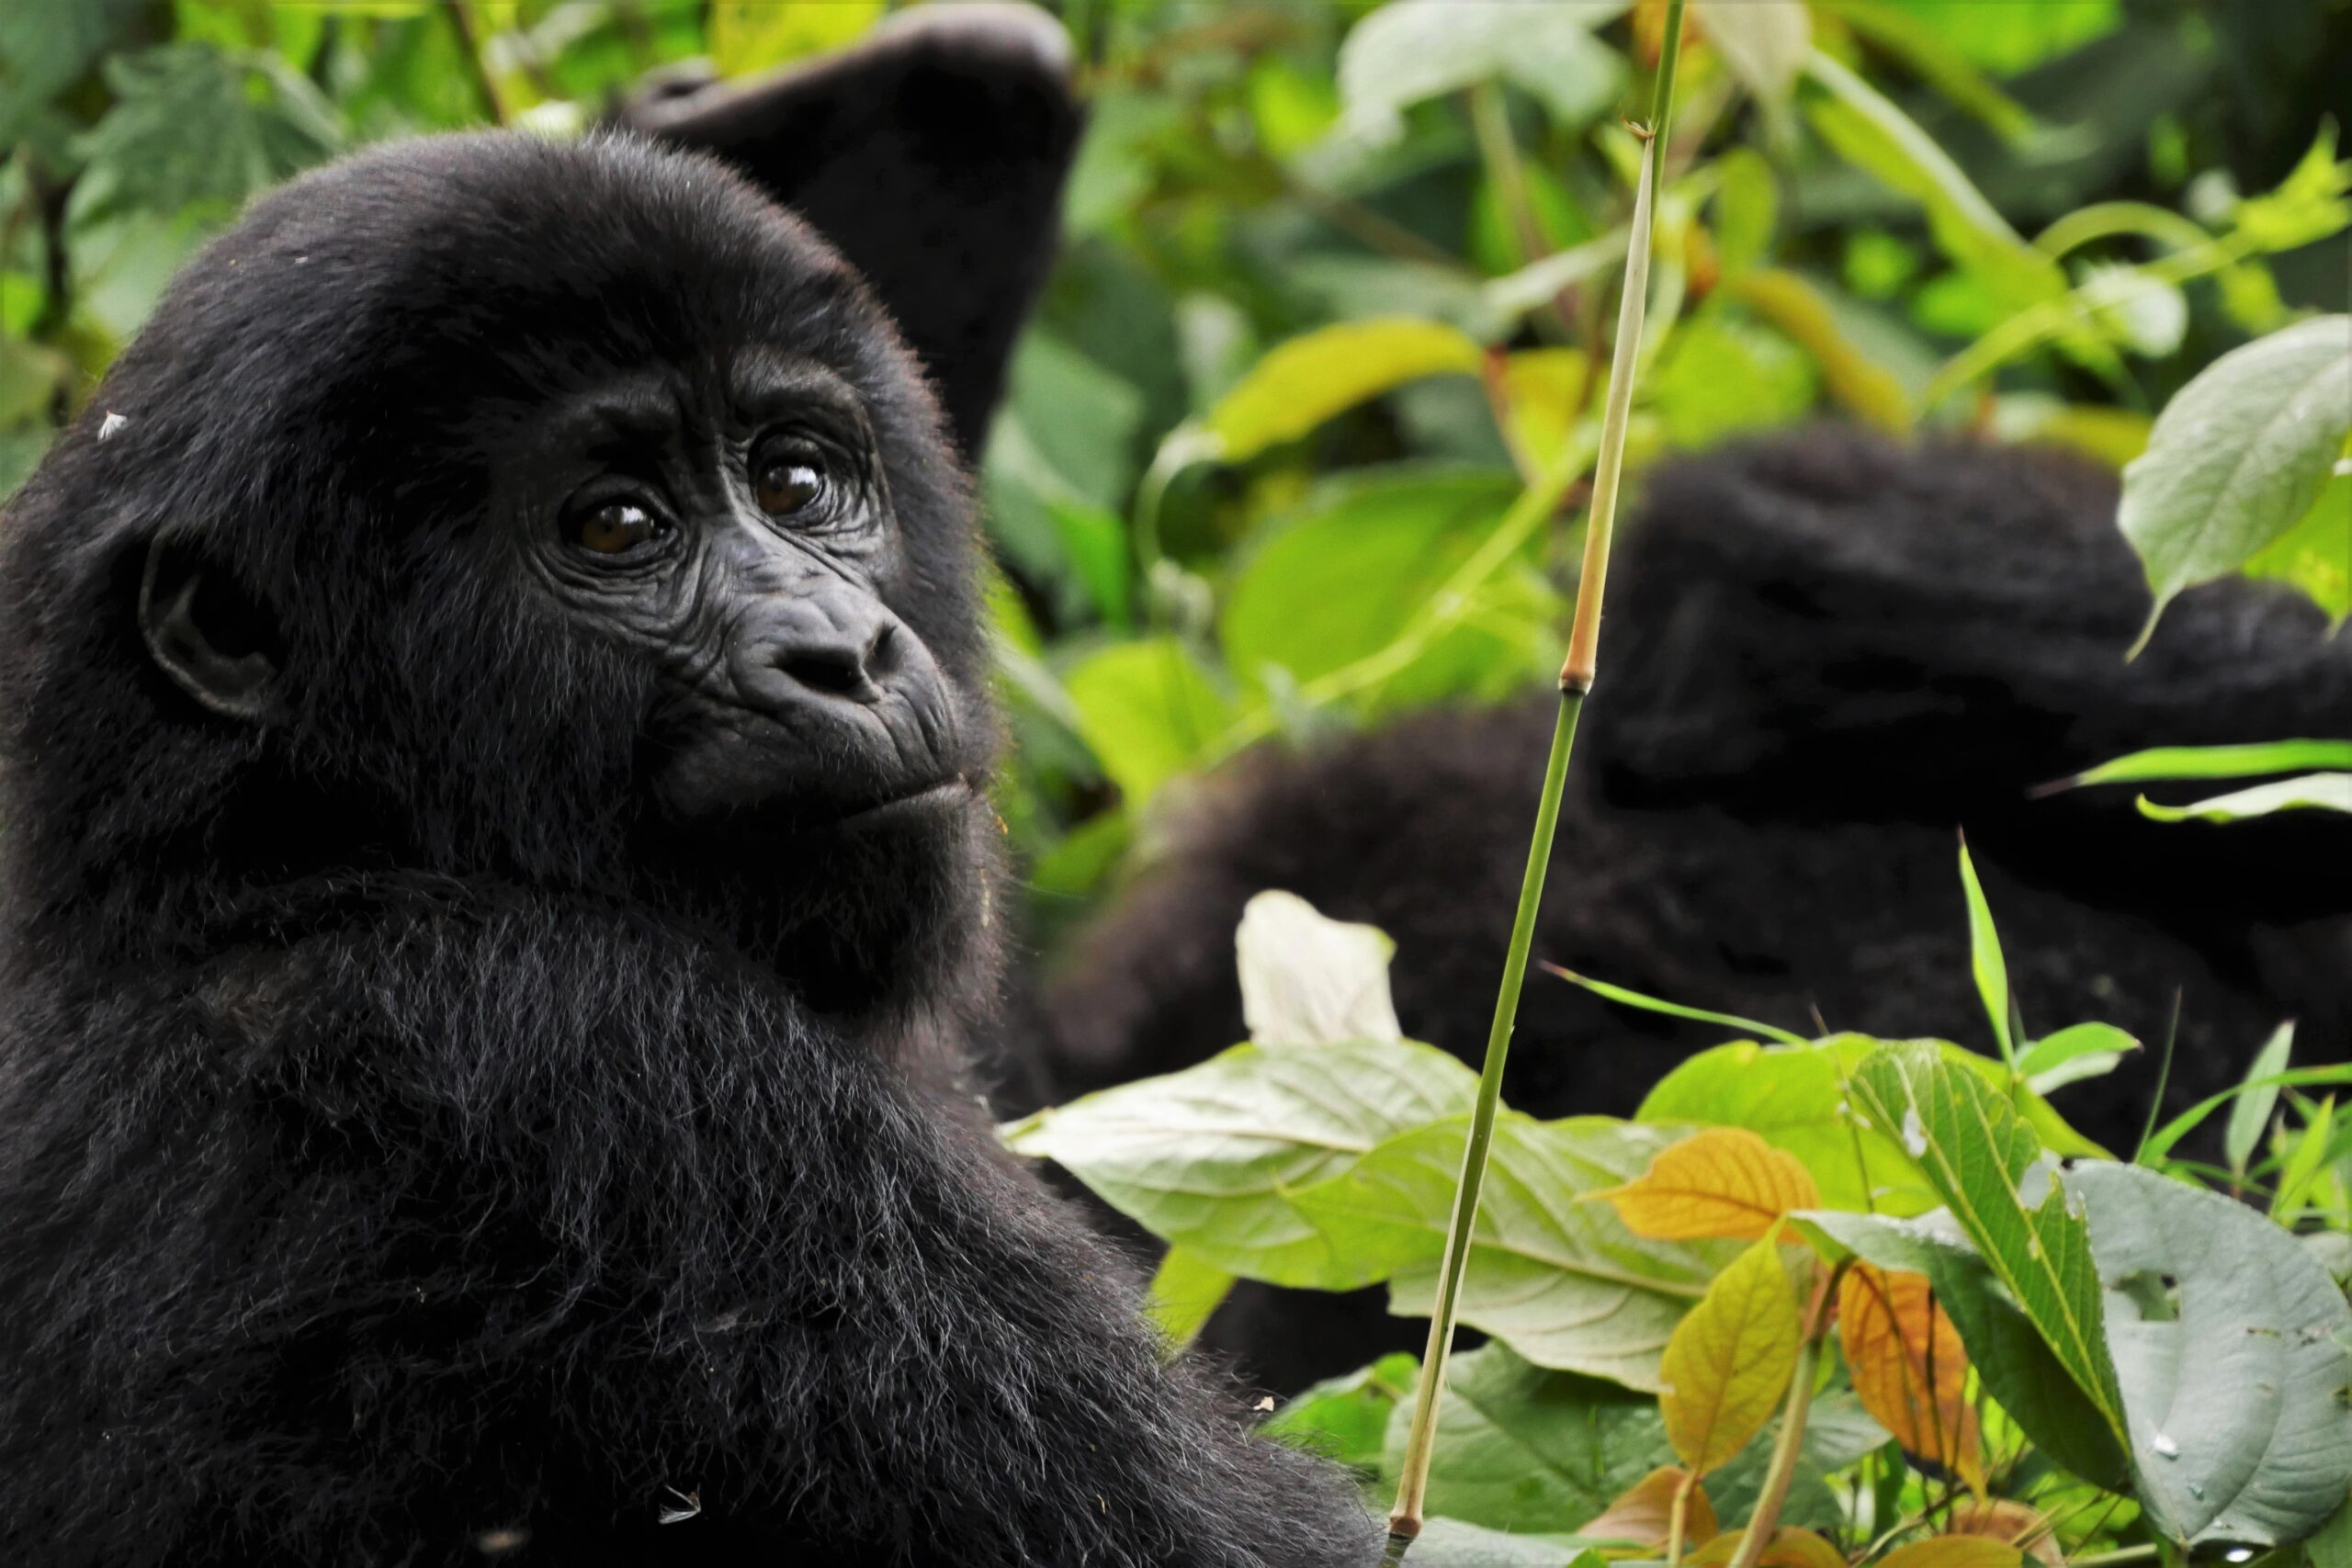 an endangered gorilla in the forest